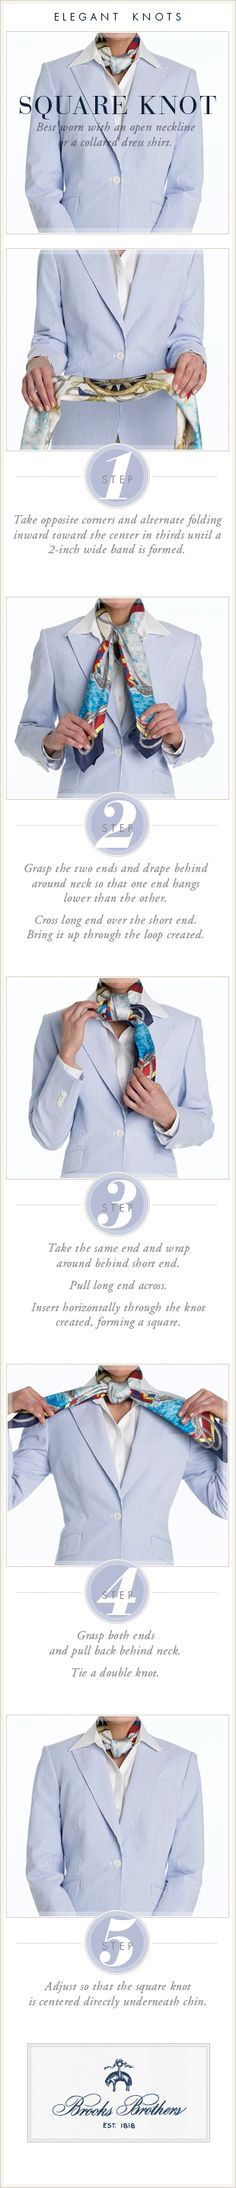 The Square Knot | Brooks Brothers